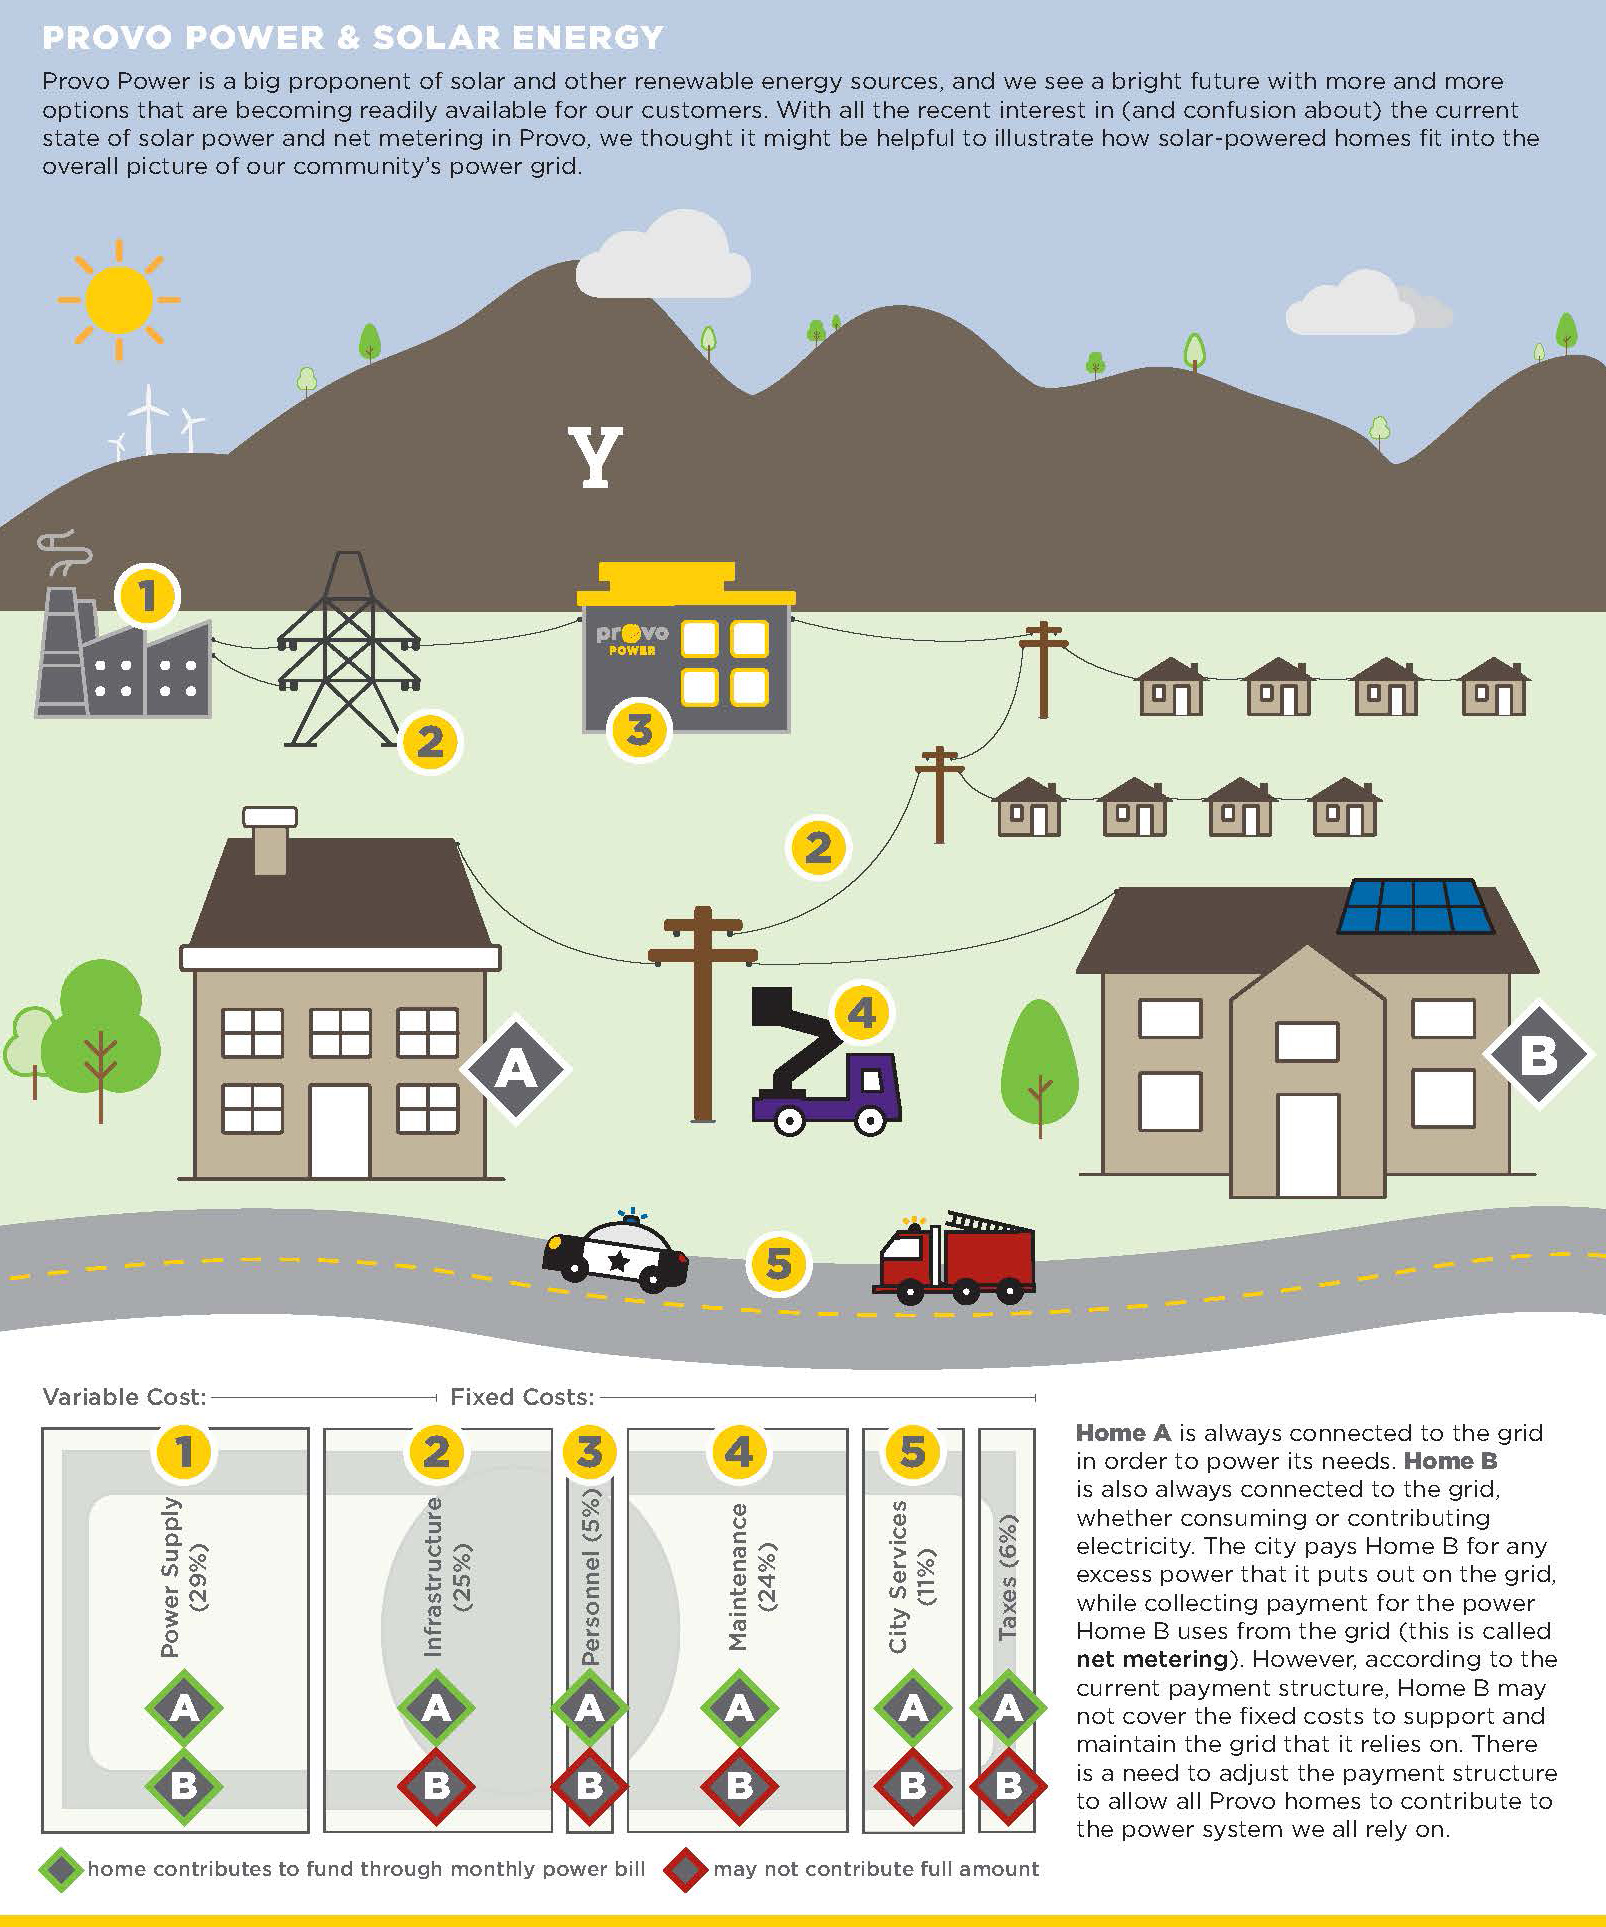 Net Metering Provo City Power